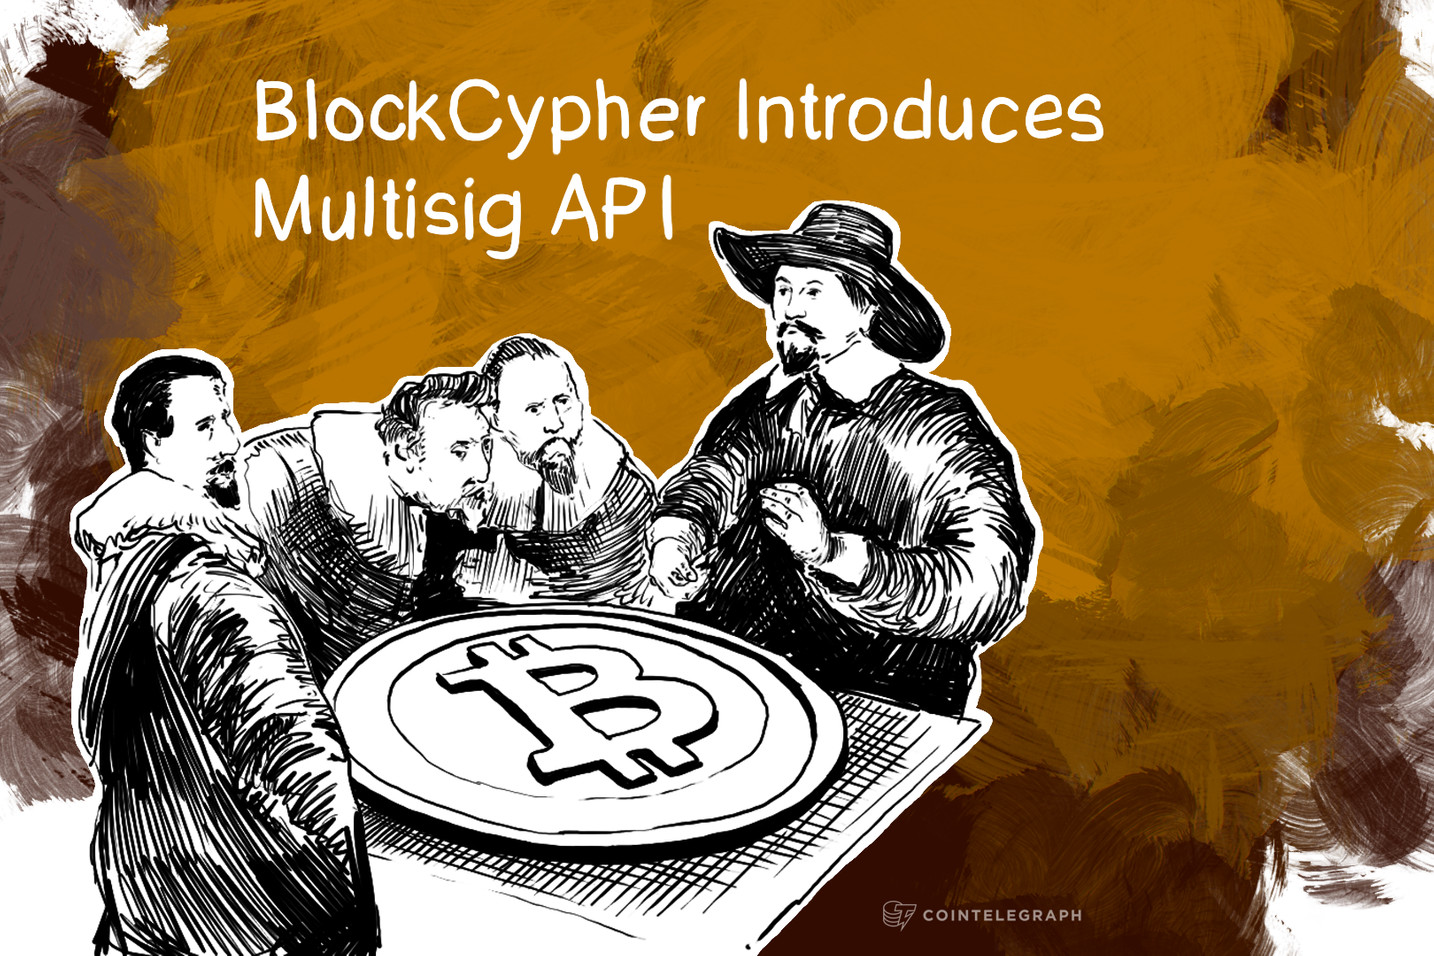 BlockCypher Introduces Multisig API